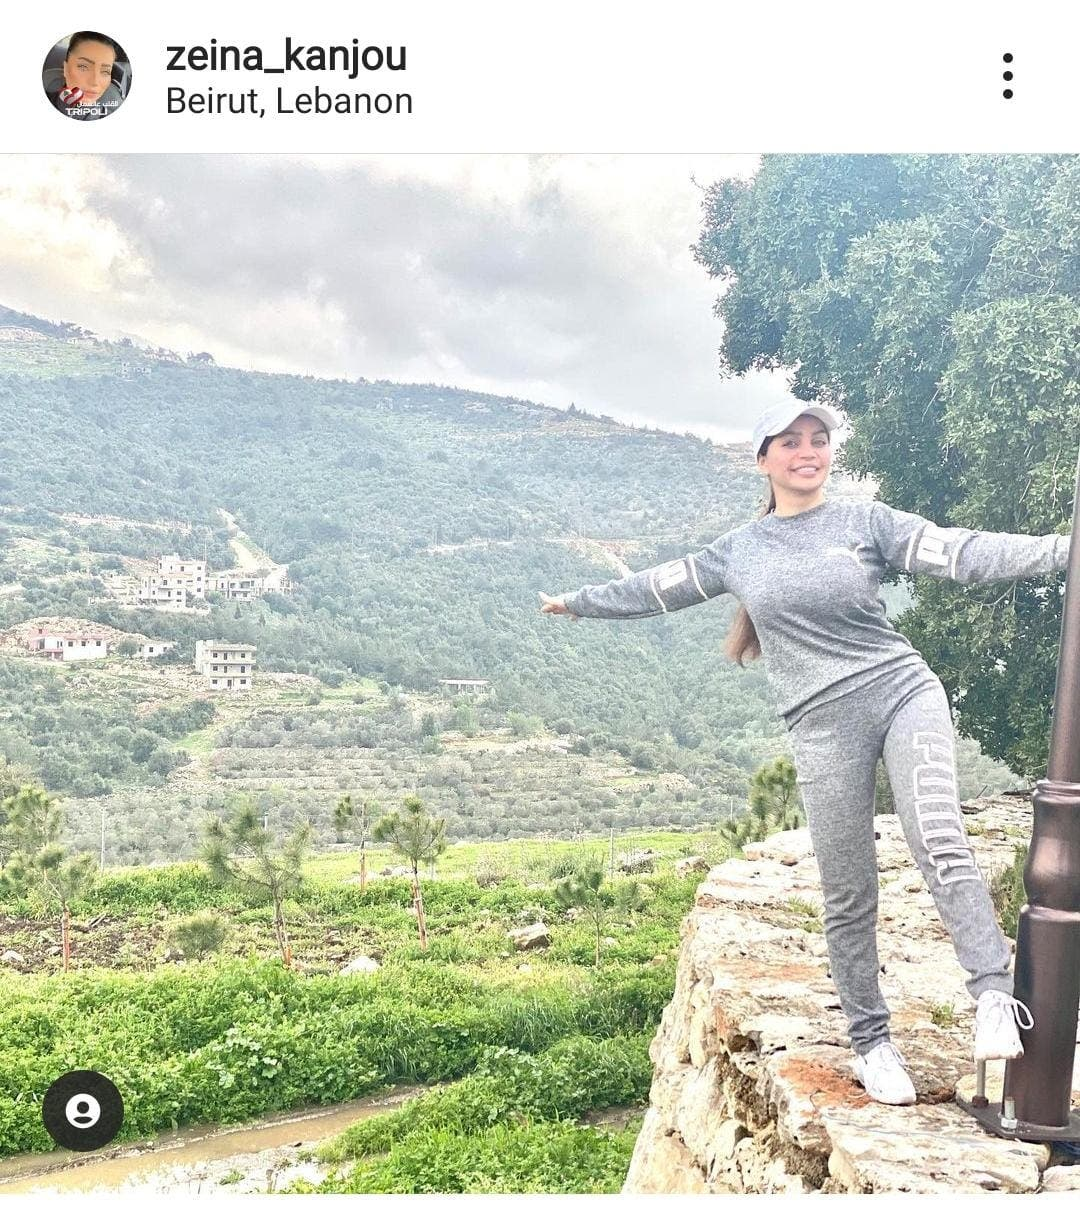 Zeina Kanjou was a young woman murdered, another victim of domestic violence. (Instagram)